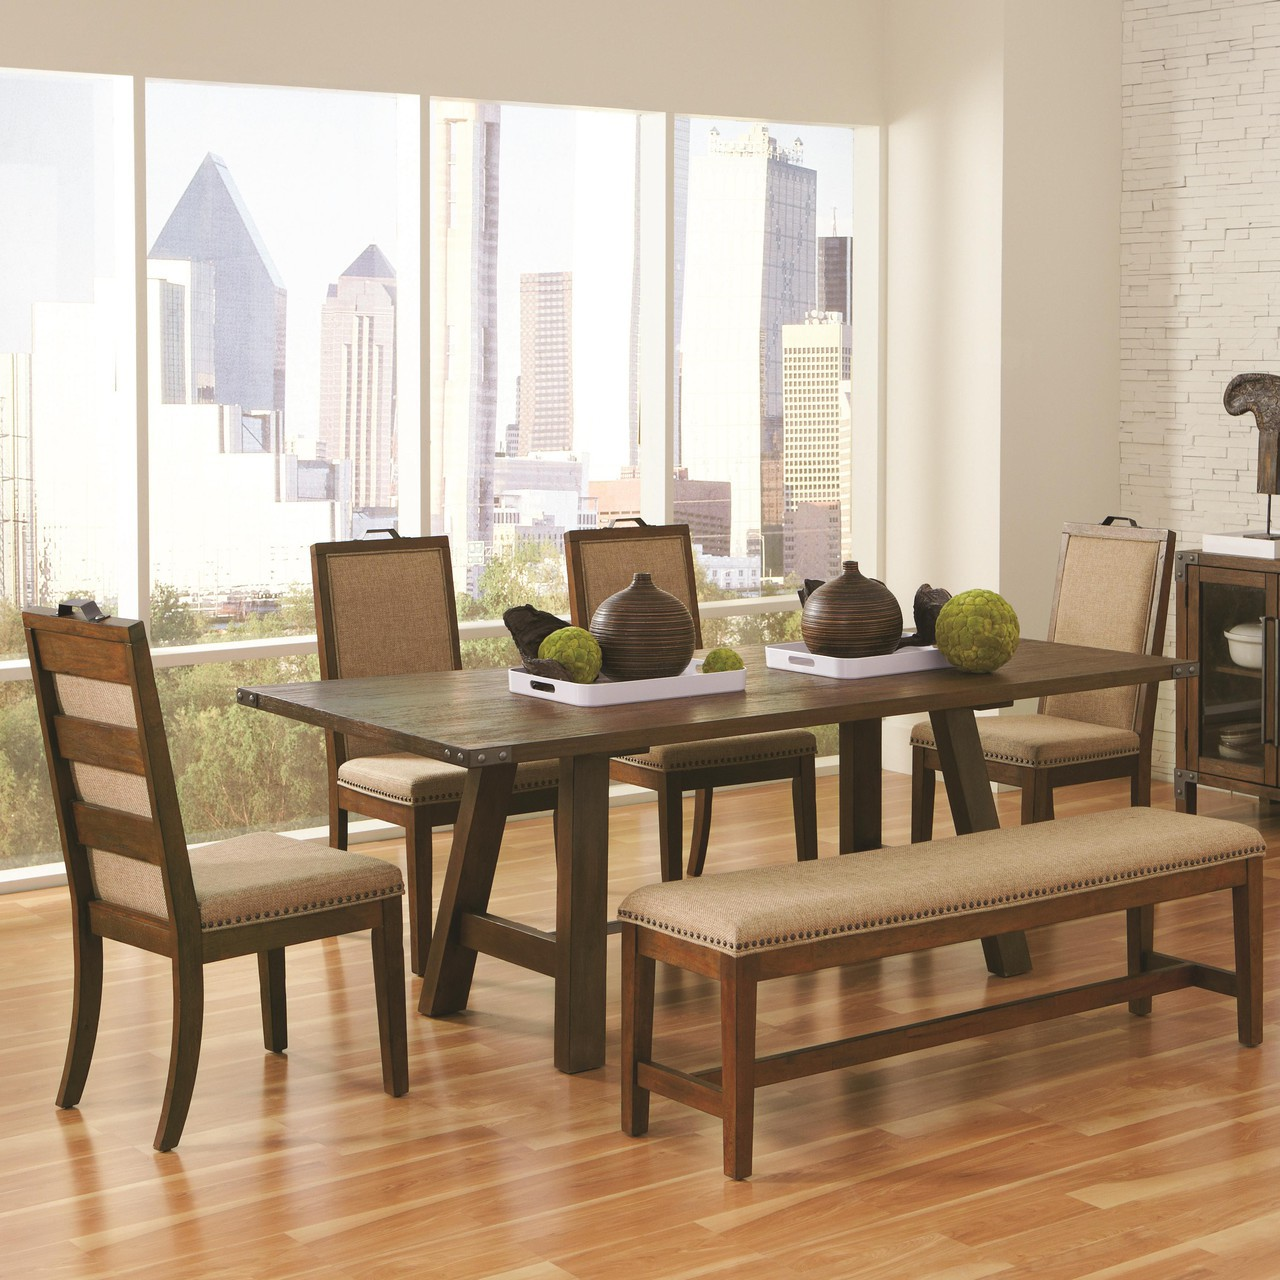 fall trend rustic dining table and chair sets kitchen table chairs Weathered Acacia Dining Table Set